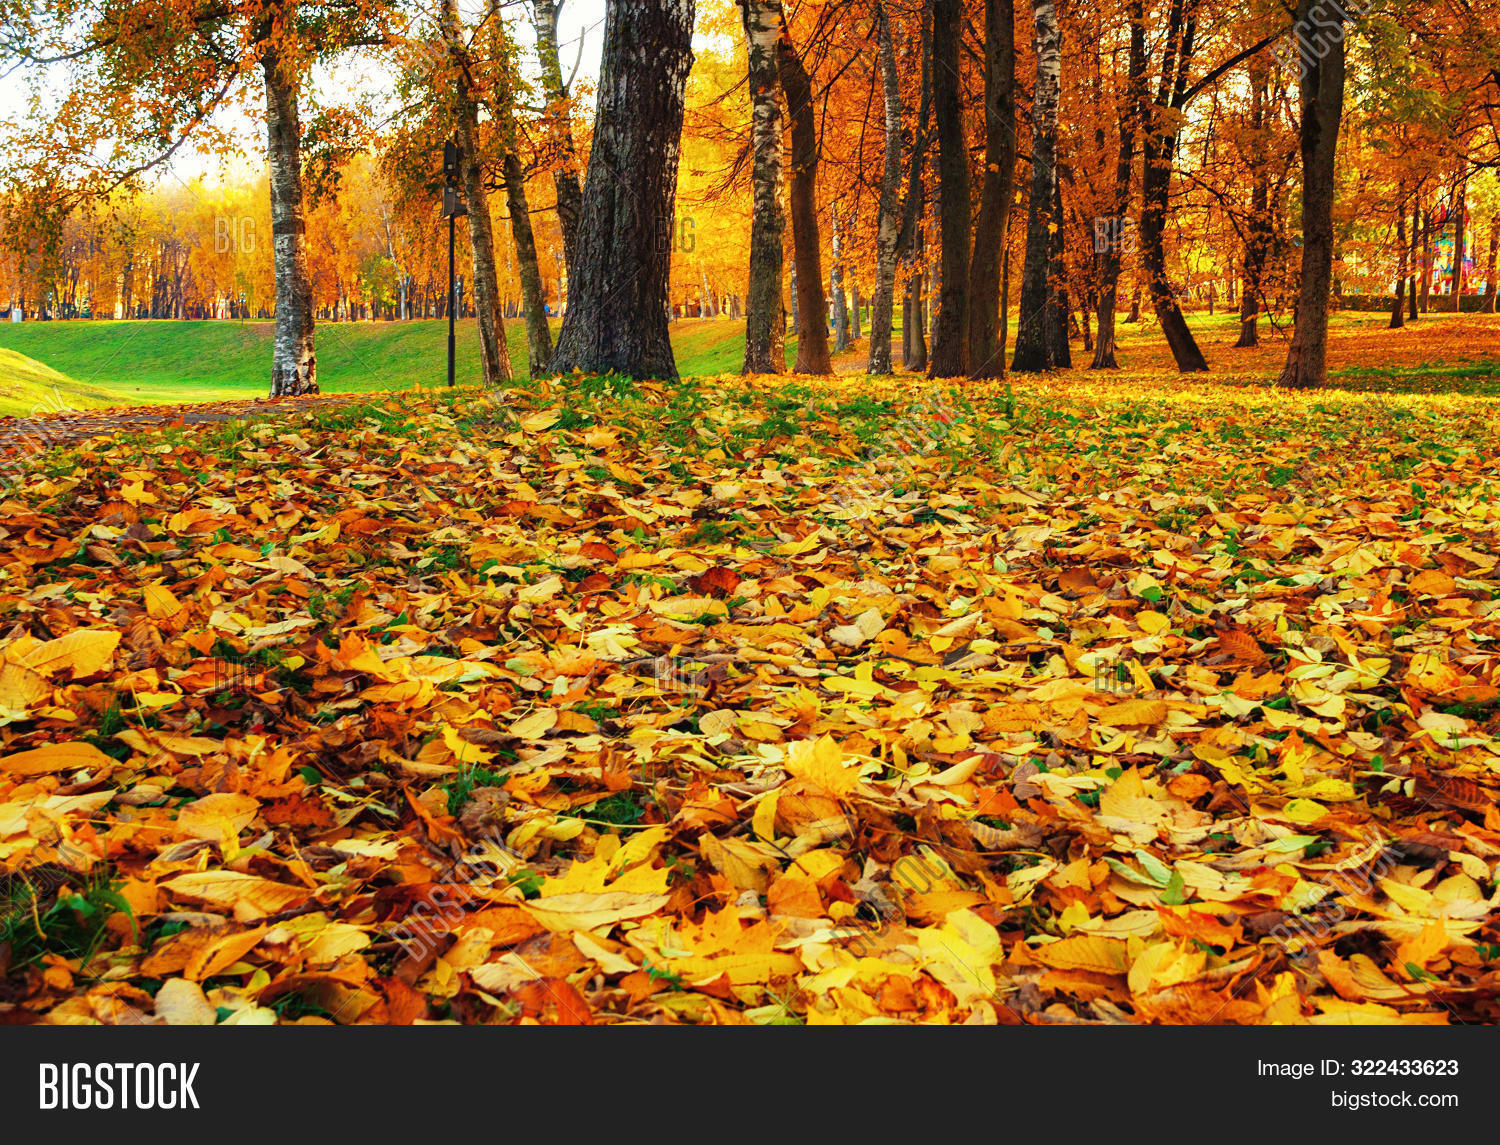 November,fall-October,fall-Russia,fall-September,autumn,autumnal,fall-background,bright,fall-city,fall,fallen,falling,fall-foliage,gold,golden,fall-ground,fall-grove,fall-landscape,lawn,fall-leaves,light,fall-maple,fall-nature,orange,fall-outdoor,fall-park,picturesque,red,fall-season,fall-street,fall-sun,fall-sunbeam,fall-sunlight,sunny,fall-sunrise,fall-sunset,fall-tree,urban,fall-view,fall-weather,yellowed